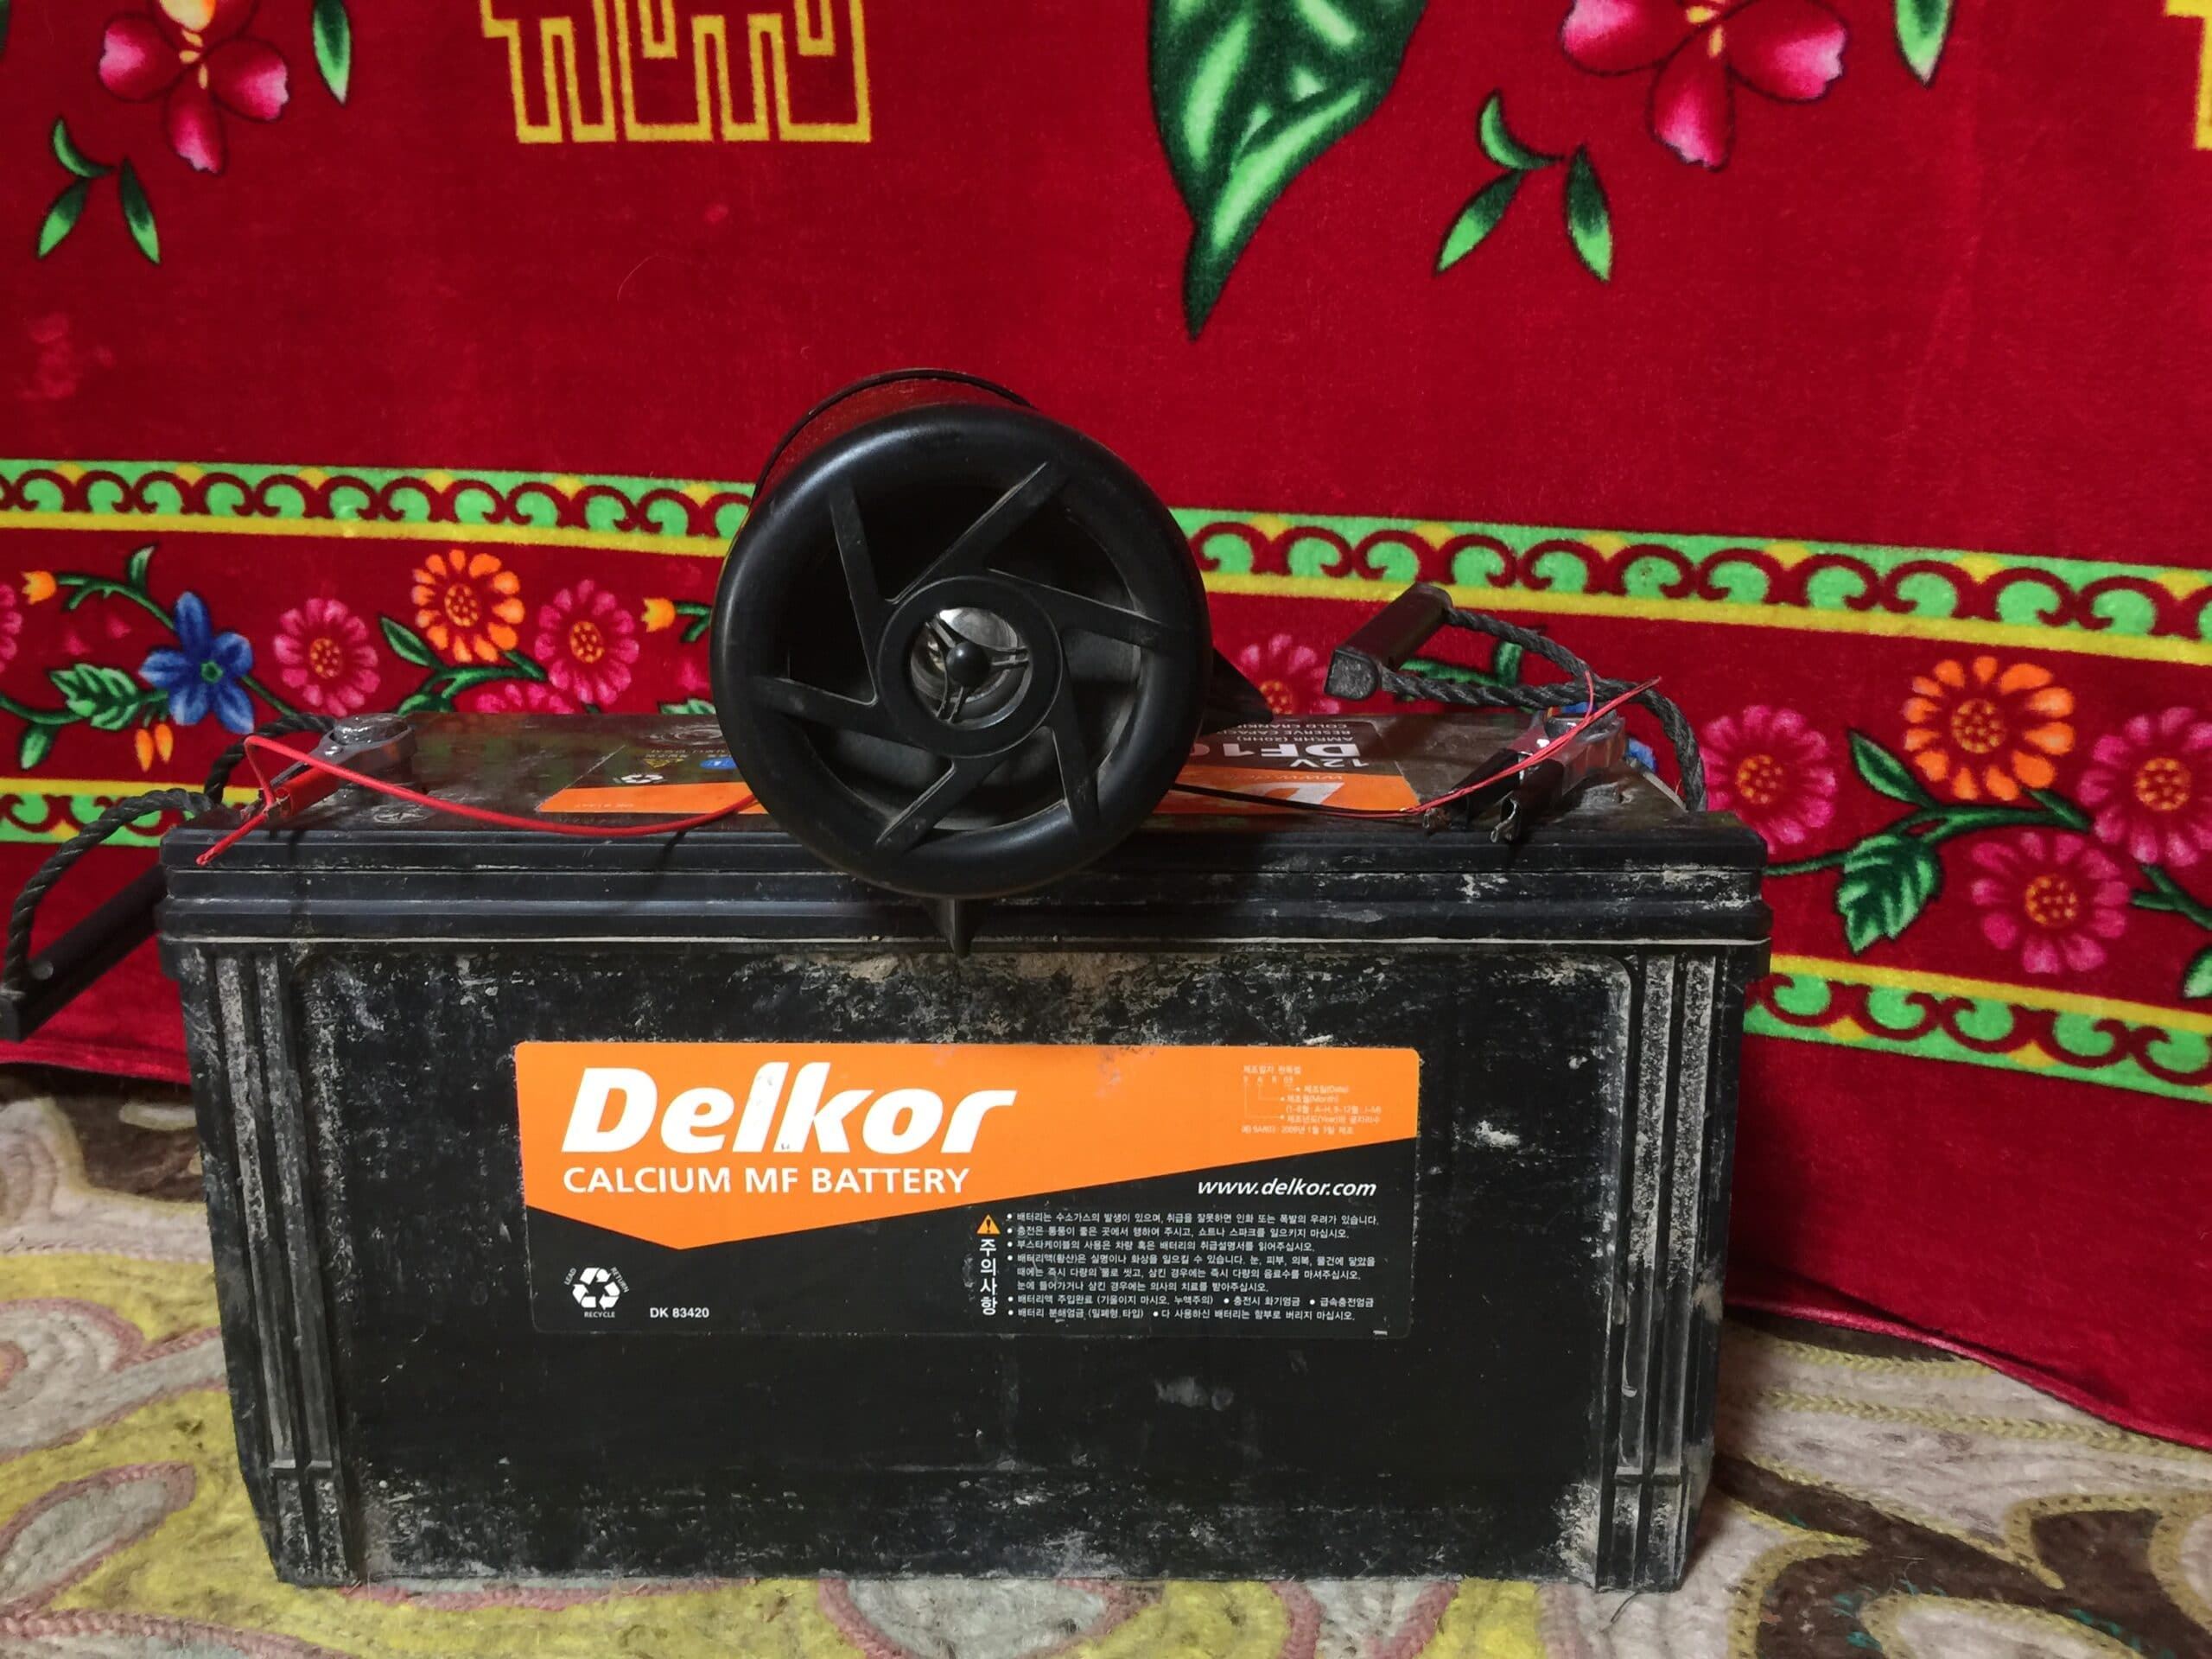 smartphone and battery sound system used during the Kazakh Mongolian Dance Party - The Insatiable Traveler